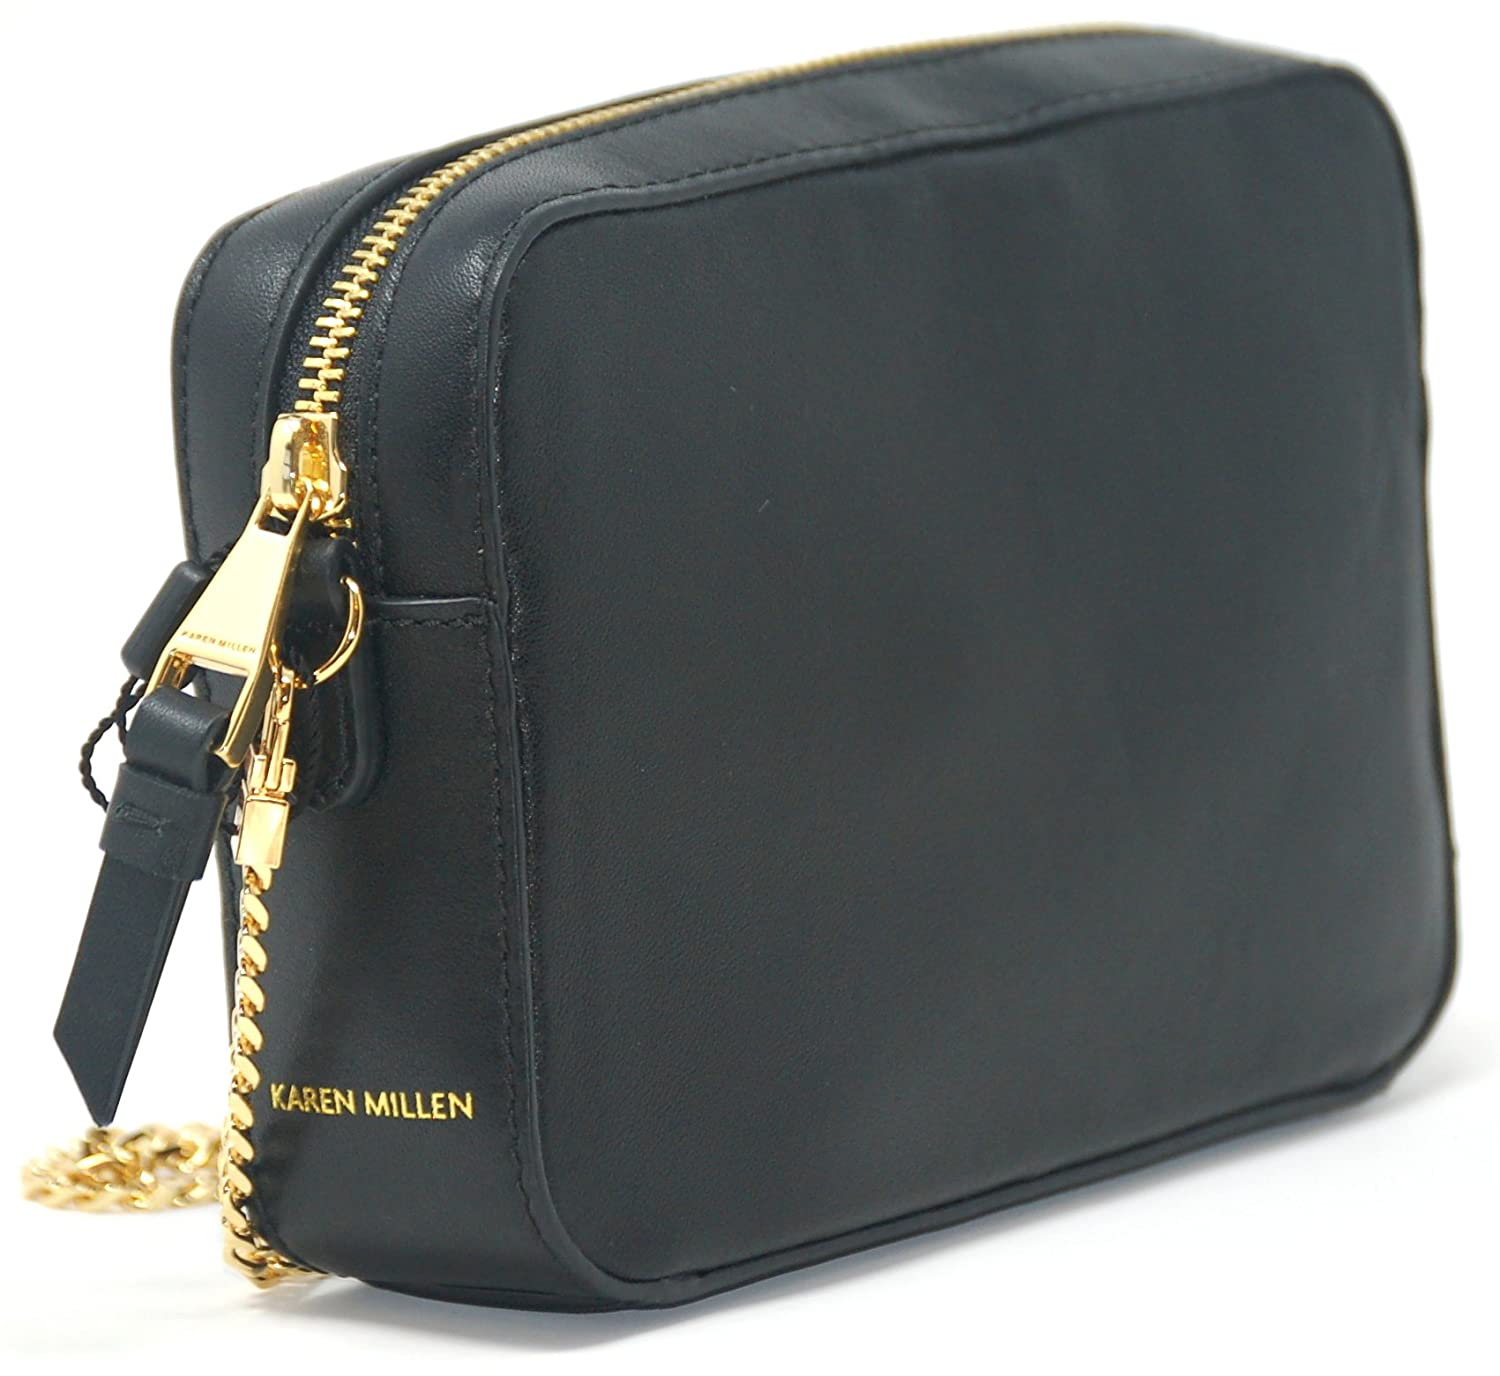 1f6d2b01fa Karen Millen Black Leather Across Body Bag with Gold Chain Strap:  Amazon.co.uk: Luggage